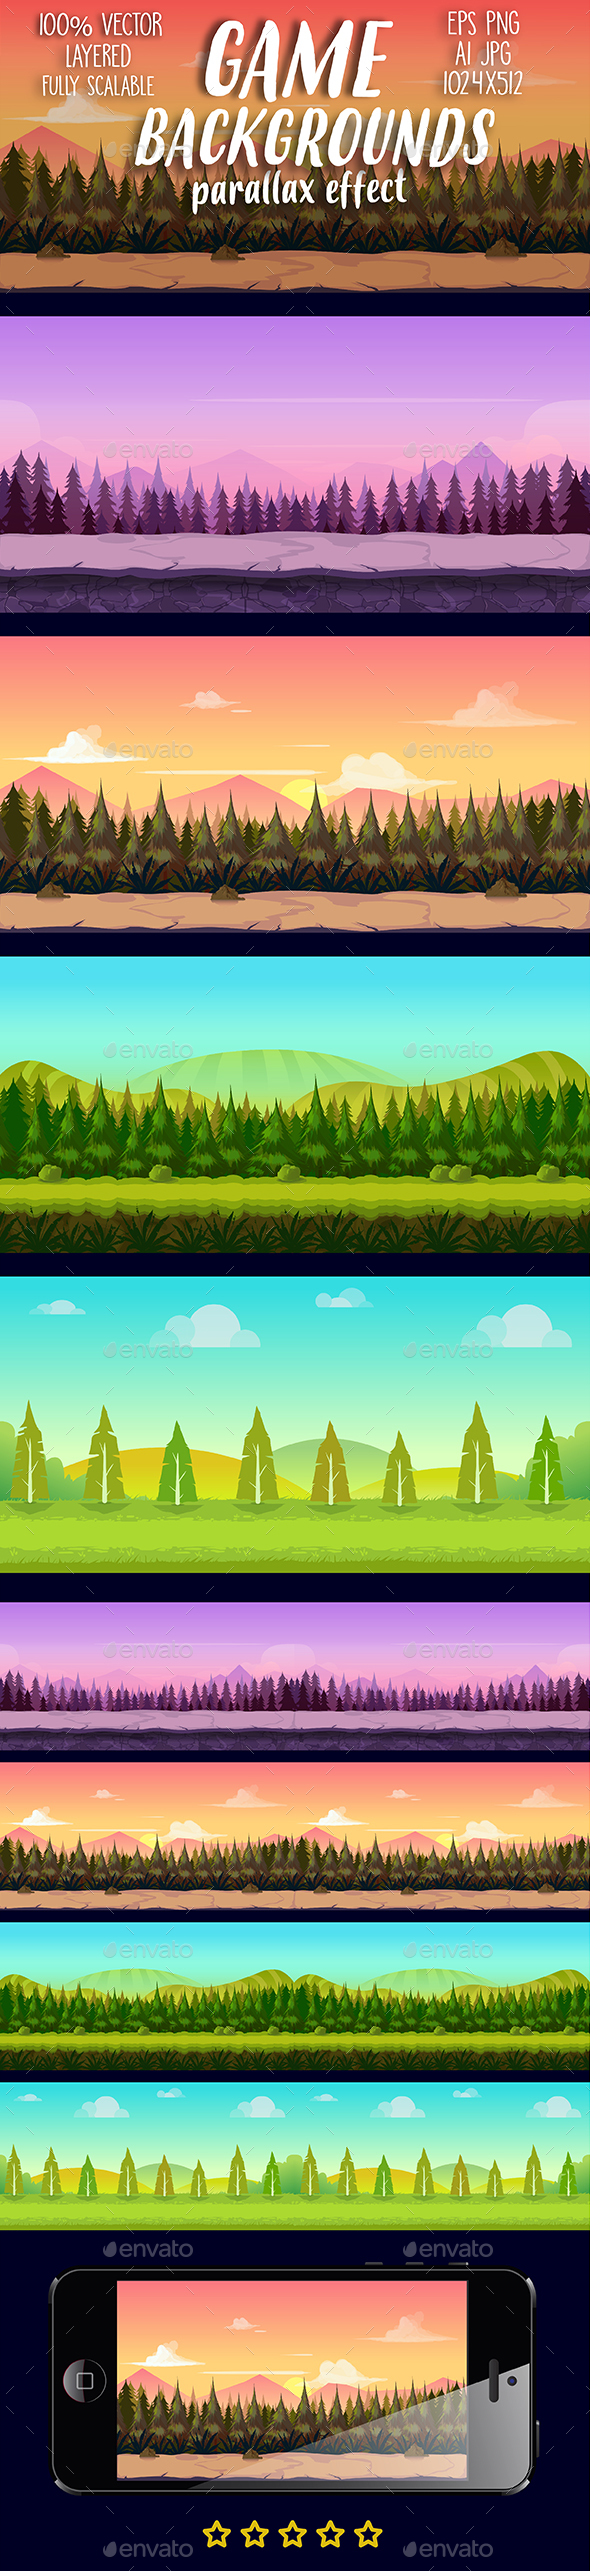 Game Backgrounds Set - Backgrounds Game Assets